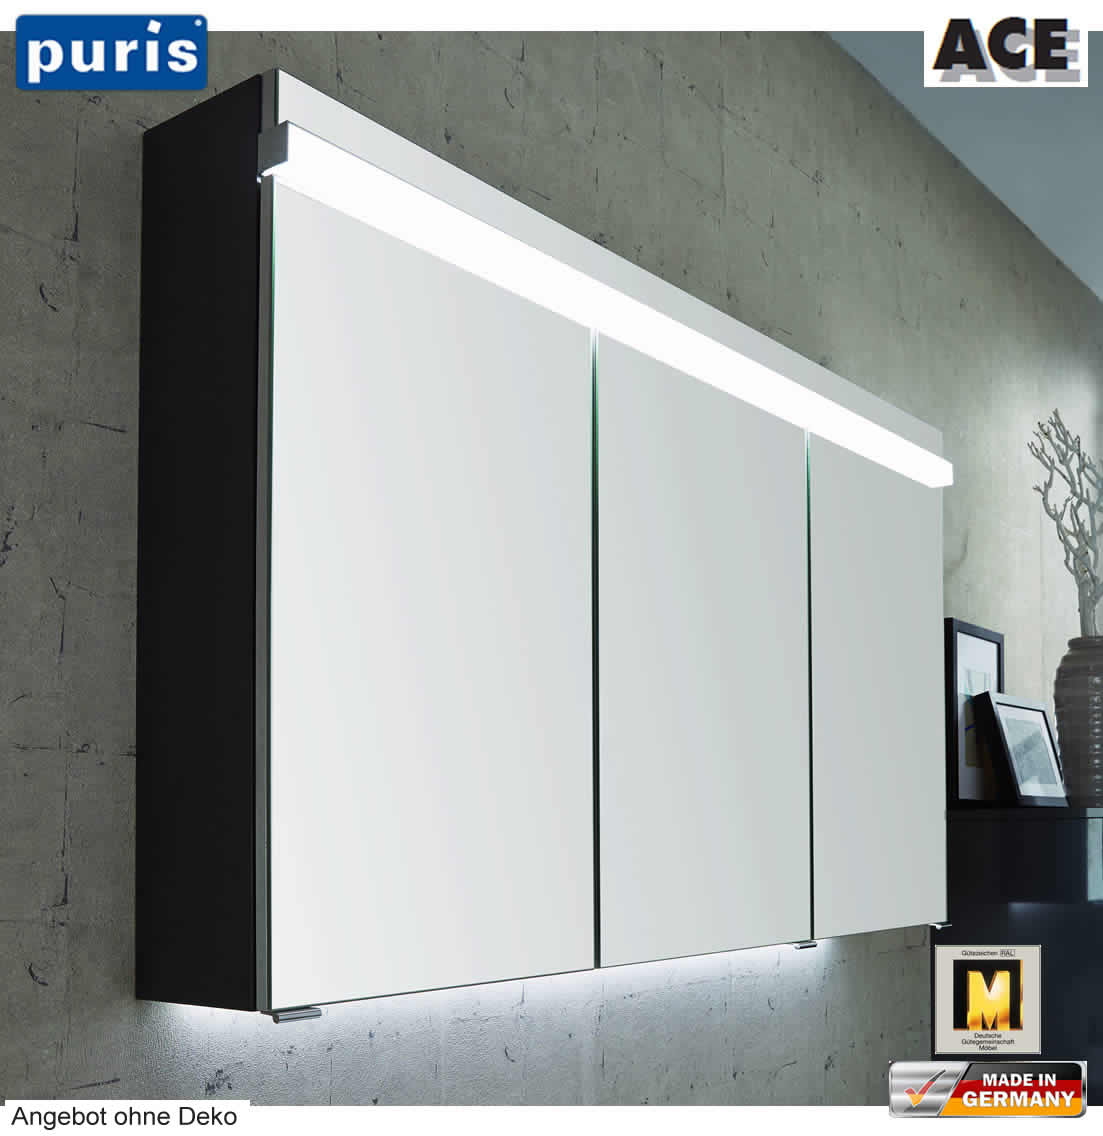 puris ace spiegelschrank 120 cm mit led beleuchtung impuls home. Black Bedroom Furniture Sets. Home Design Ideas